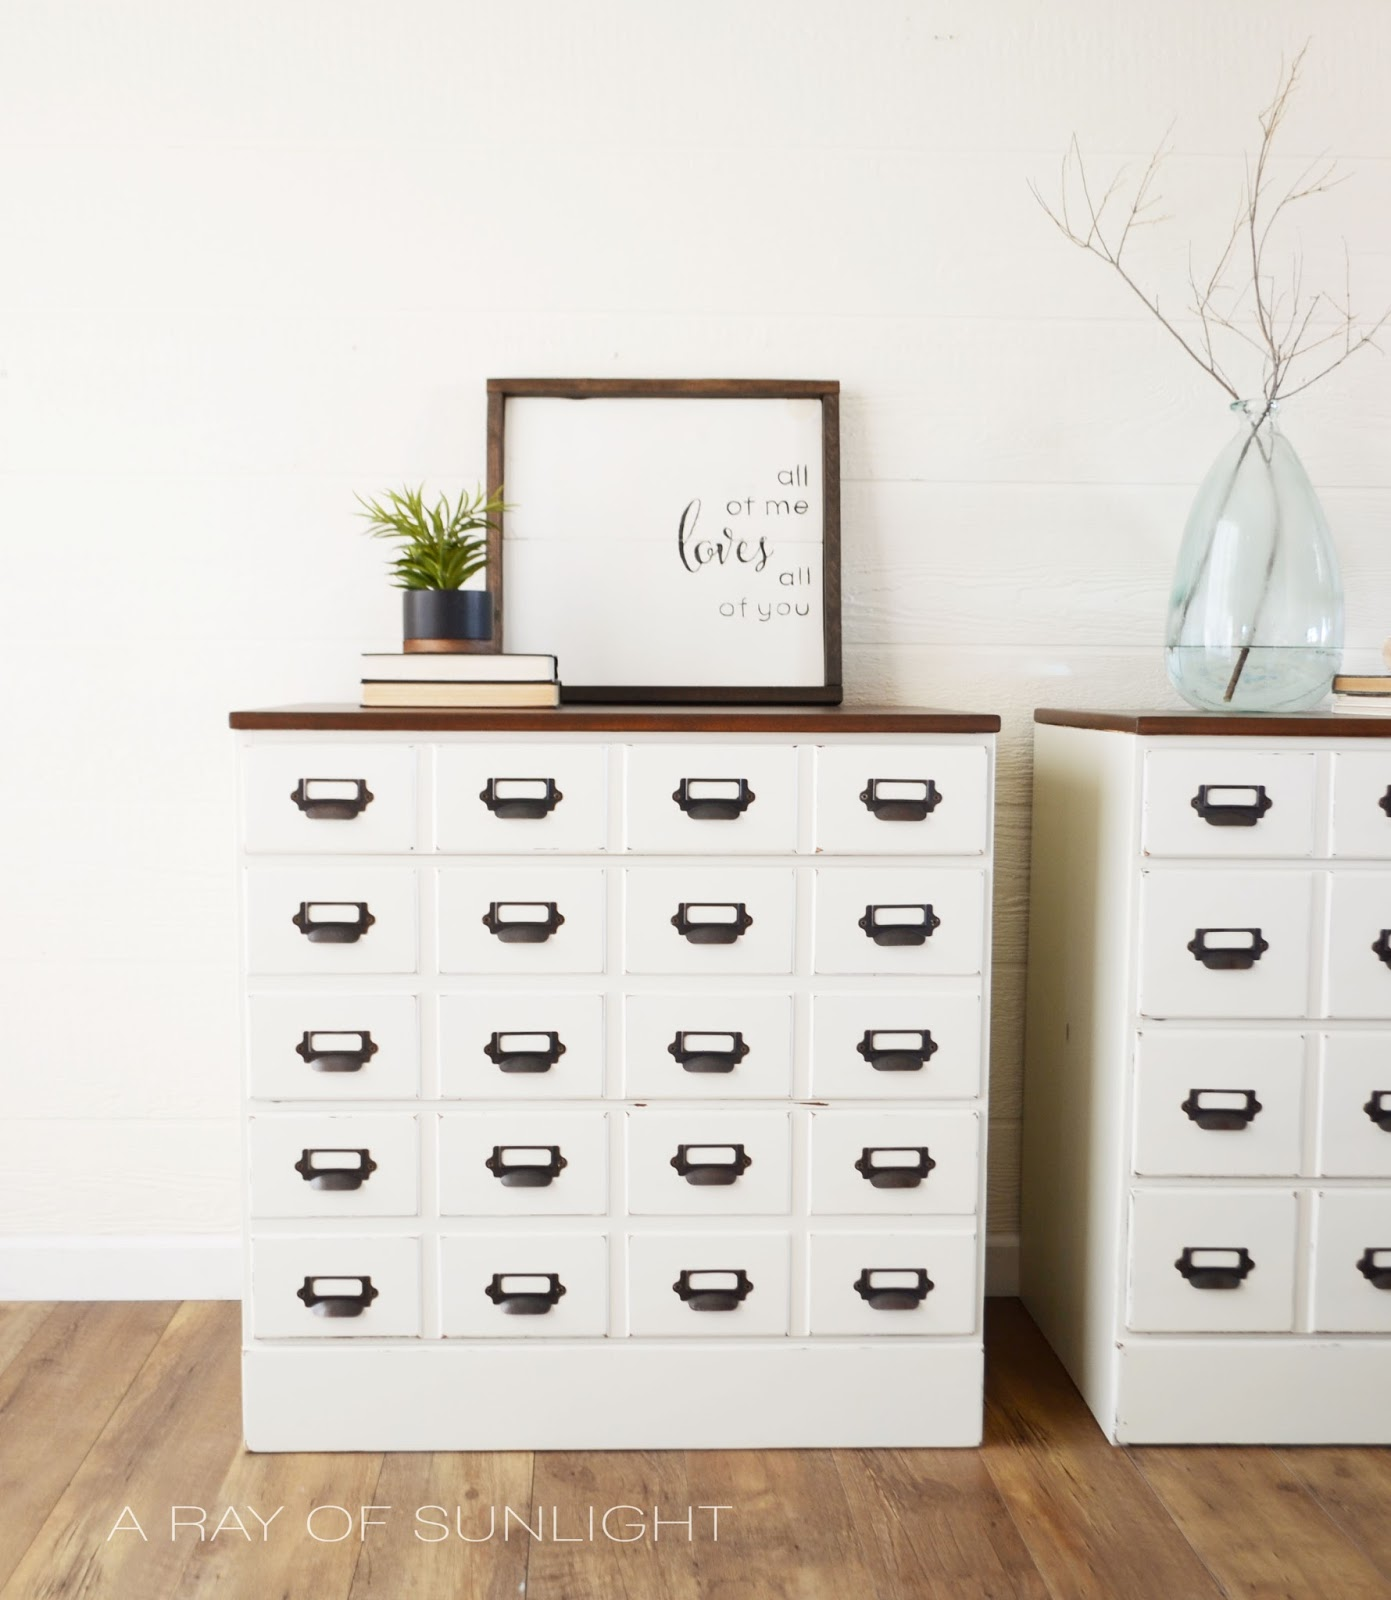 DIY Card Catalog Dressers made from vintage dressers. These thrift dressers were completely made over to be a mismatched pair of nightstands for your DIY bedroom. Get this farmhouse apothecary look with this DIY tutorial! #thriftfinds #paintedfurniture #farmhousestyle #bedroomdiy #inspiration